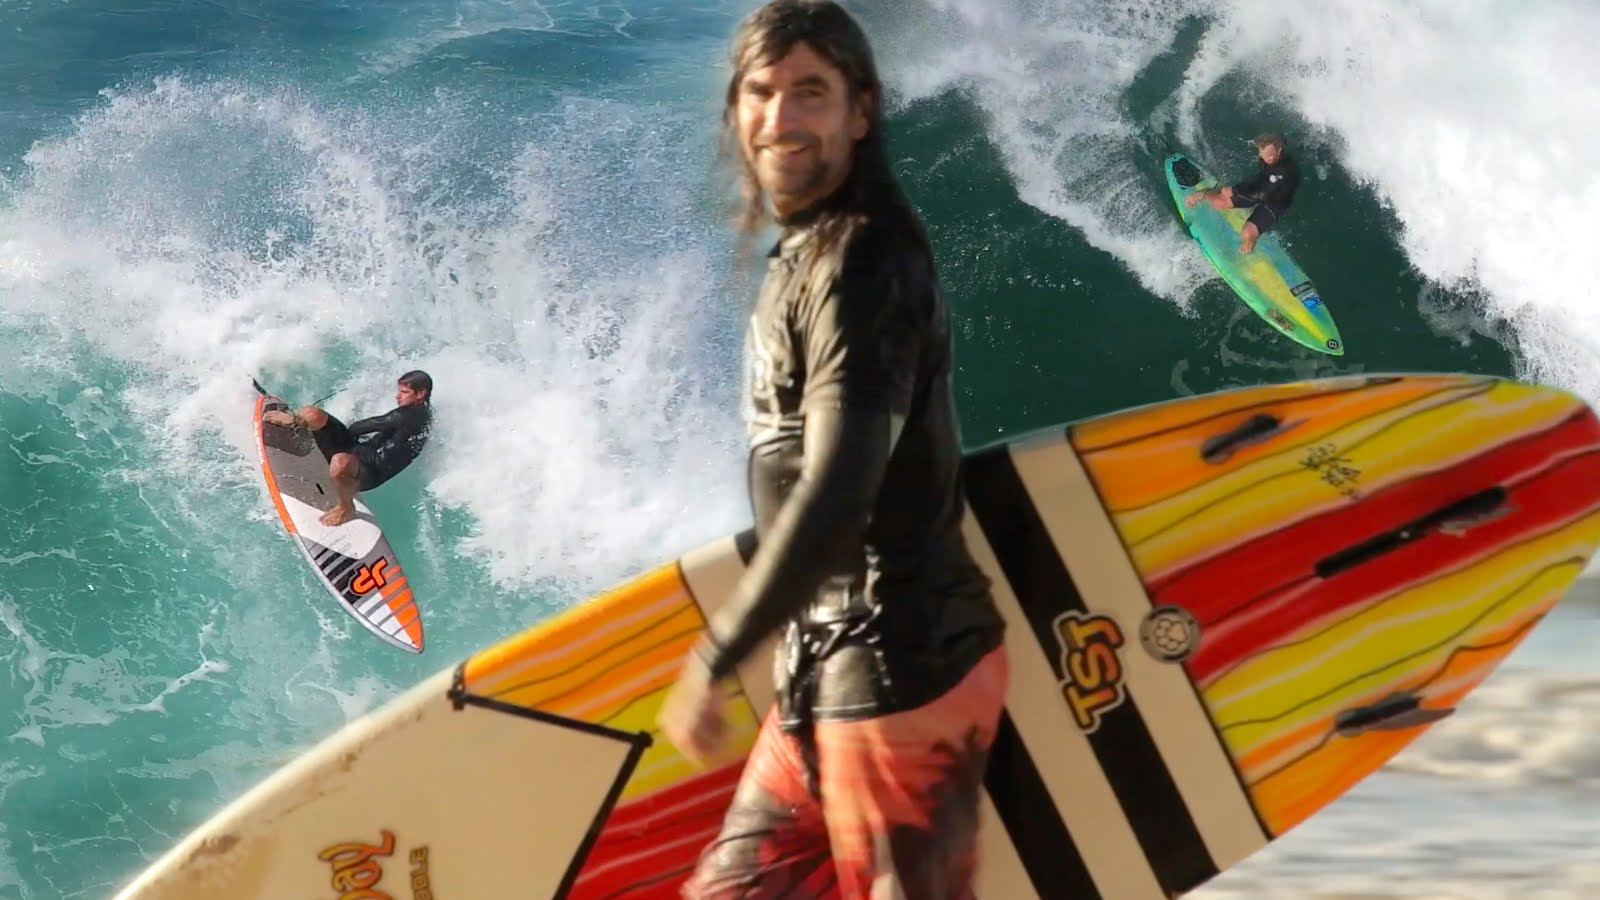 Music Video: 3 SUP Surfers and a Drone